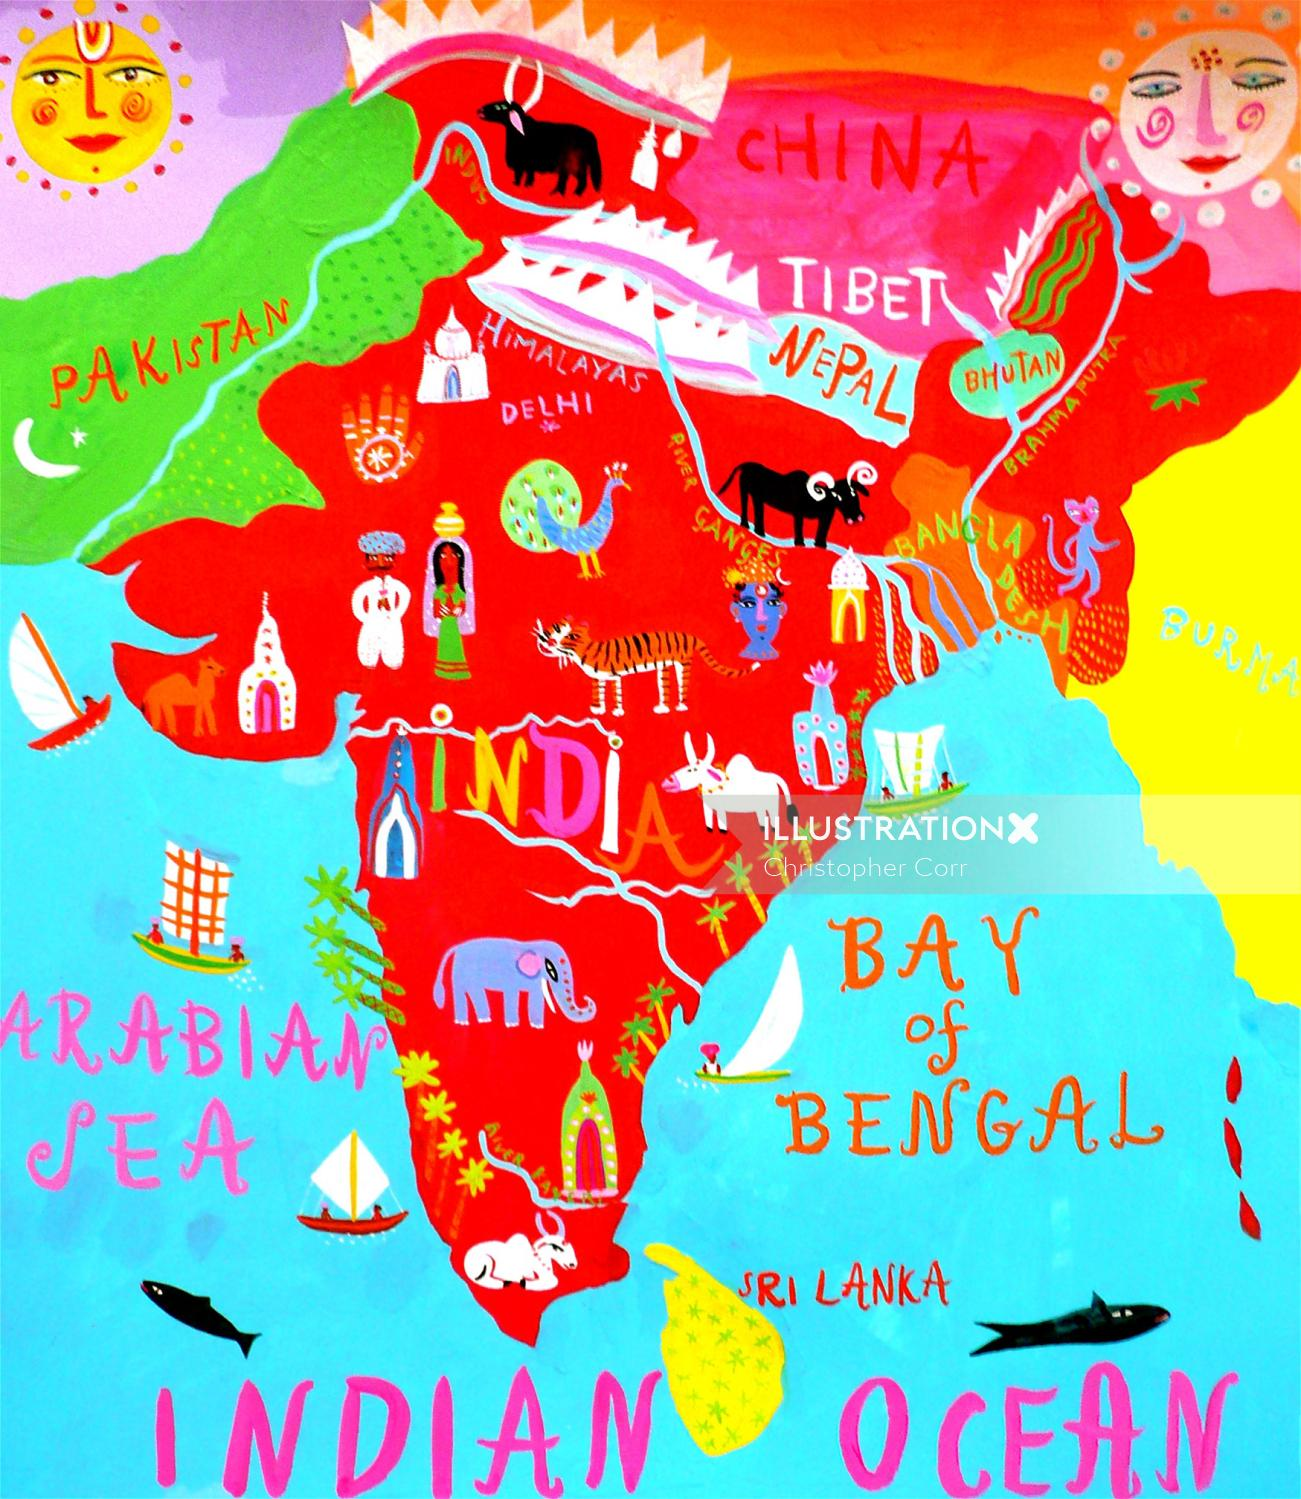 India map illustration by Christopher Corr